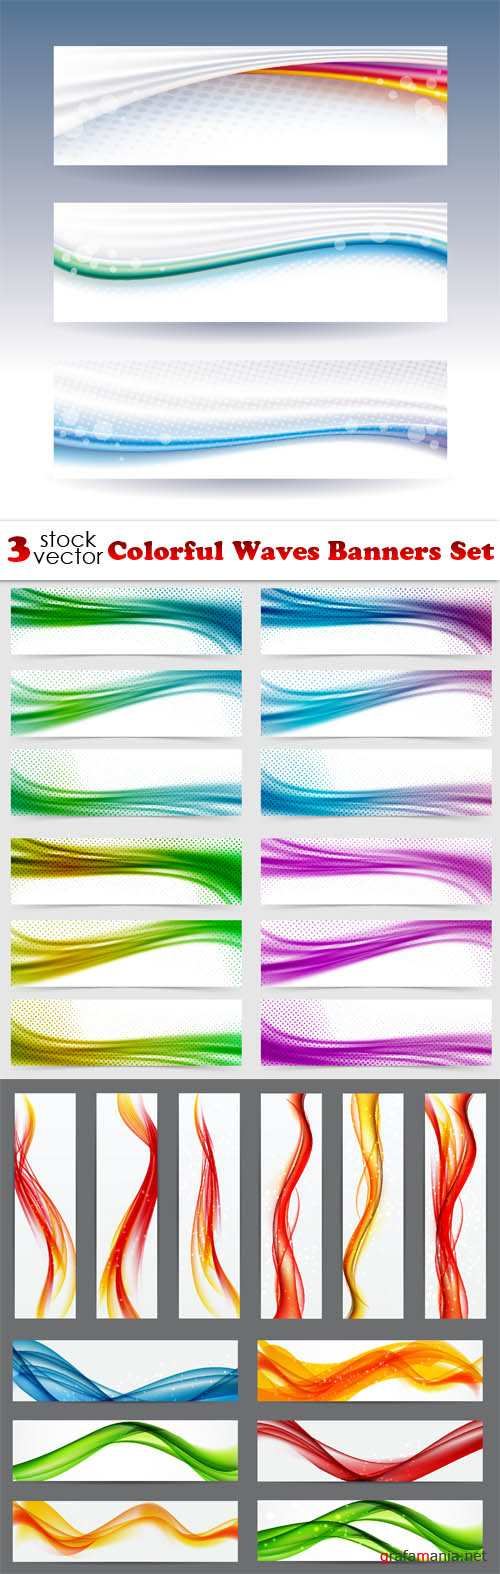 Vectors - Colorful Waves Banners Set